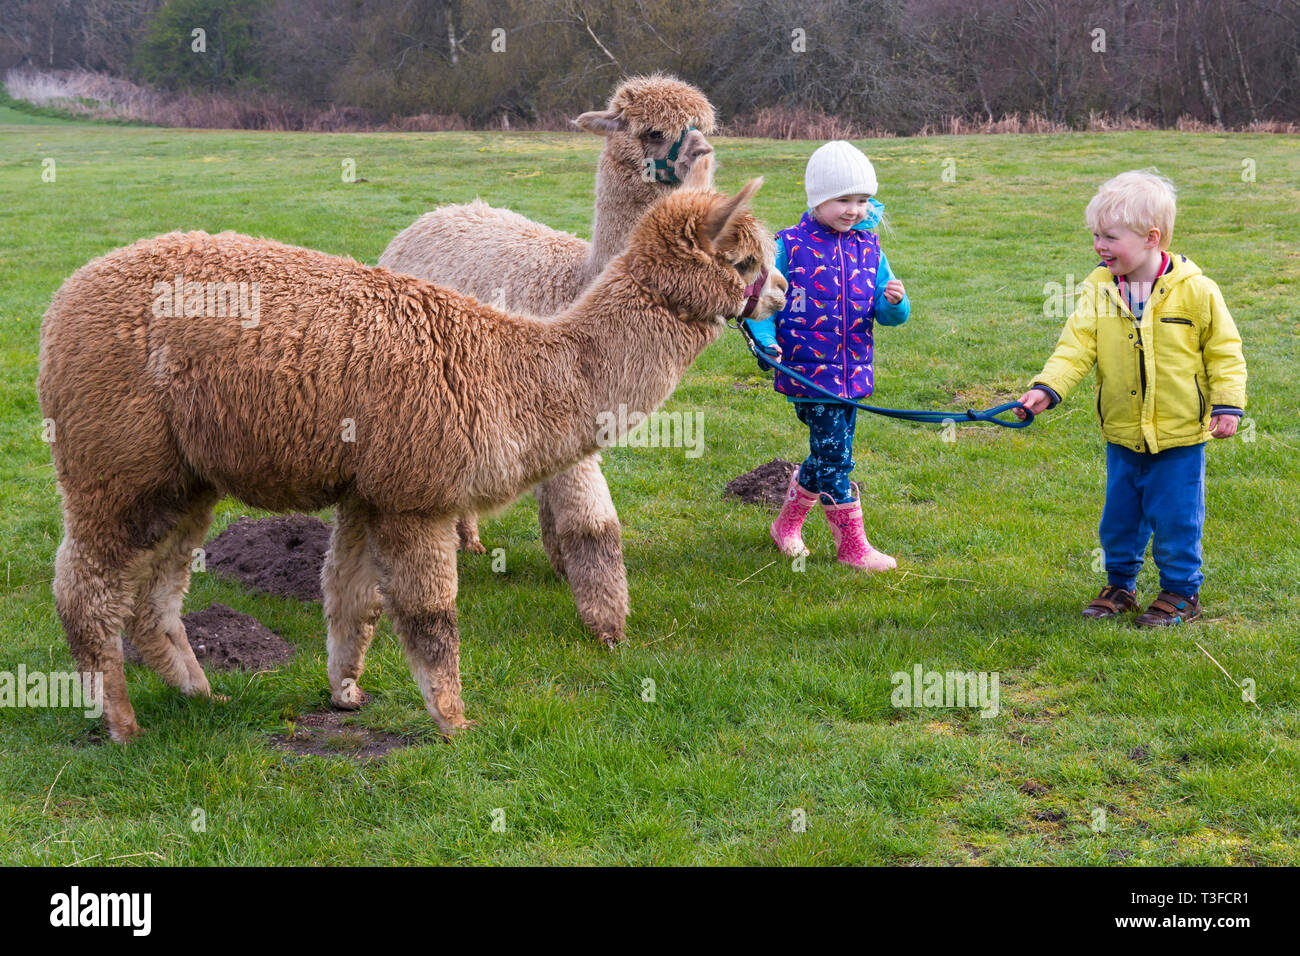 Wareham, Dorset, UK. 9Th avr 2019. Promenades à Longthorns Alpaca Farm à Wareham. Elliot et Ethan marche Harry (le gingembre) et William (autorisation reçue). Credit : Carolyn Jenkins/Alamy Live News Photo Stock